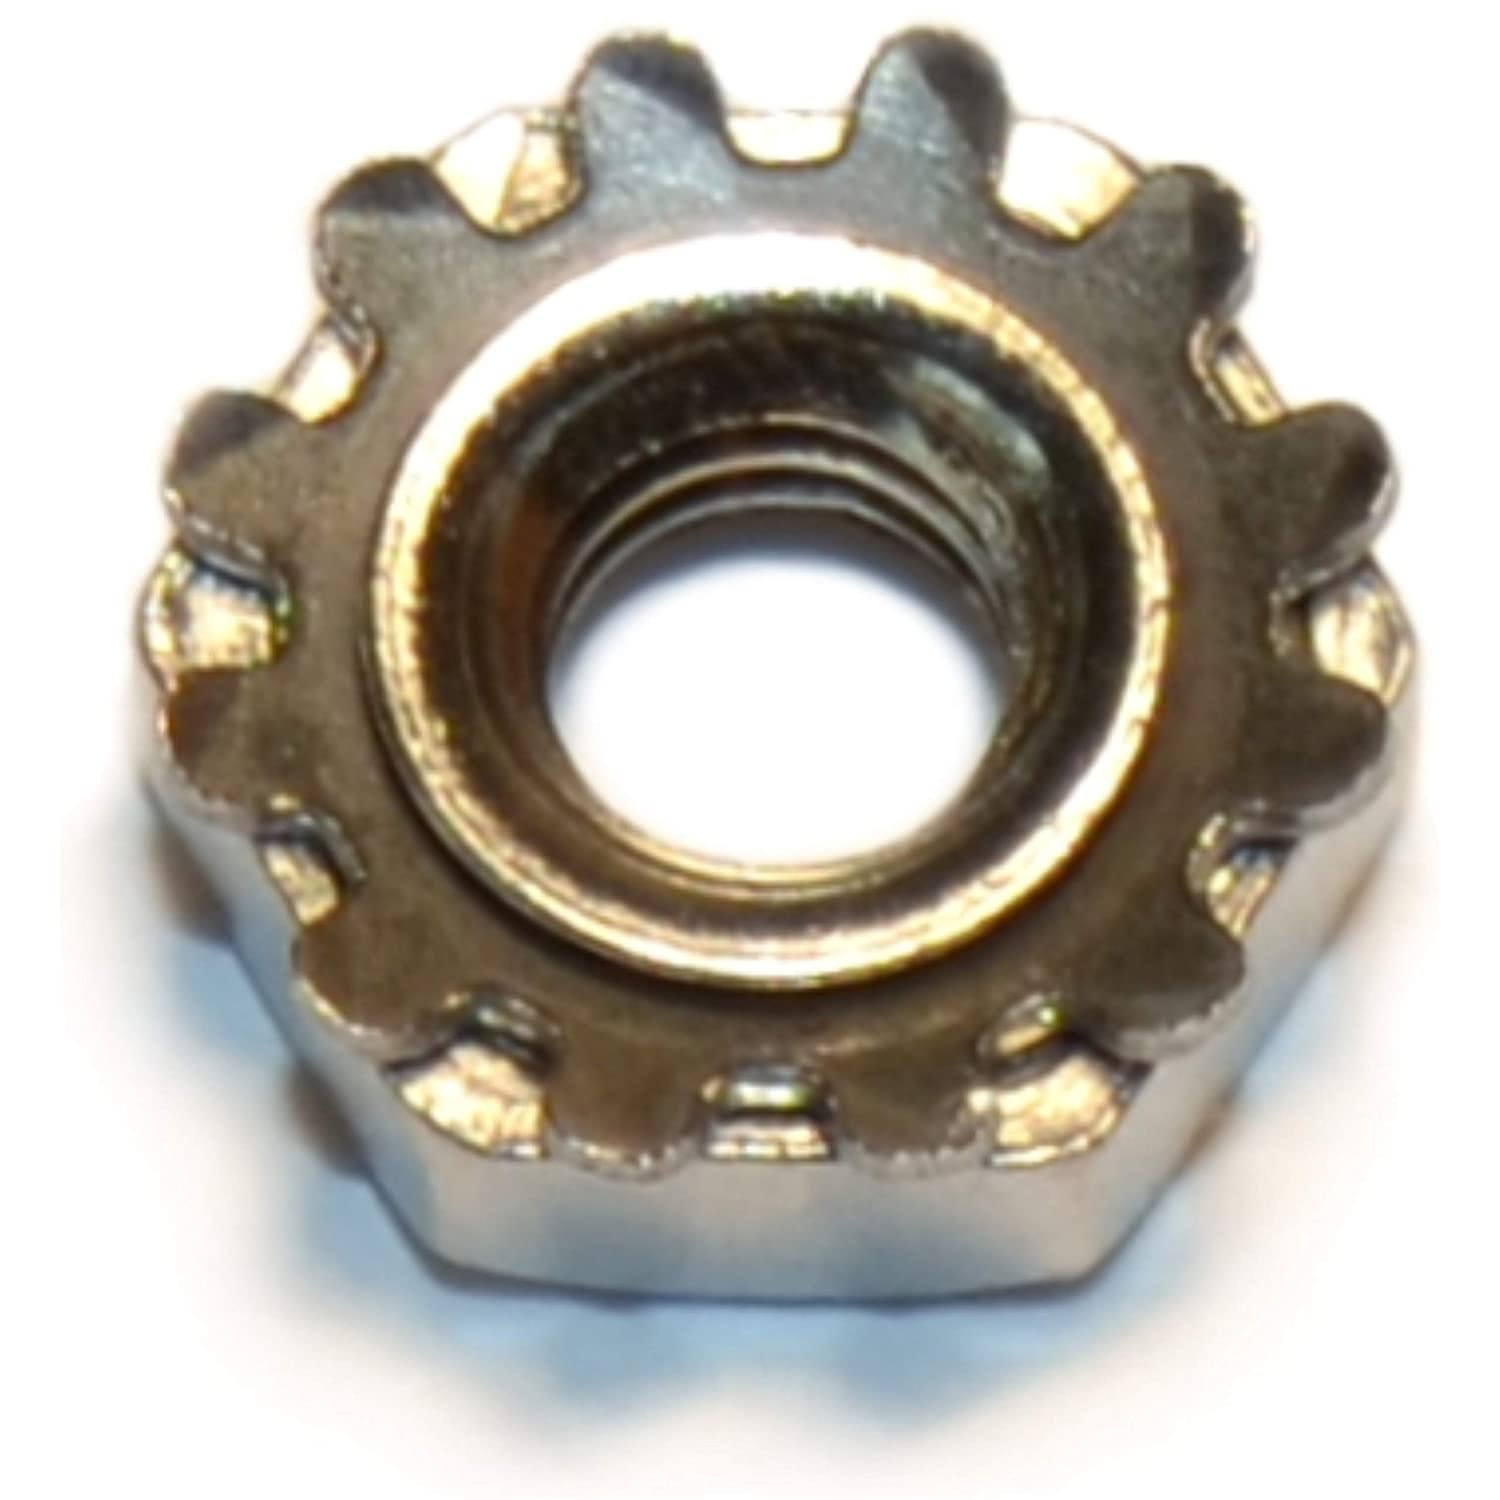 Hard-to-Find Fastener 014973448264 Keps Lock Nuts Piece-20 Midwest Fastener Corp 8-32